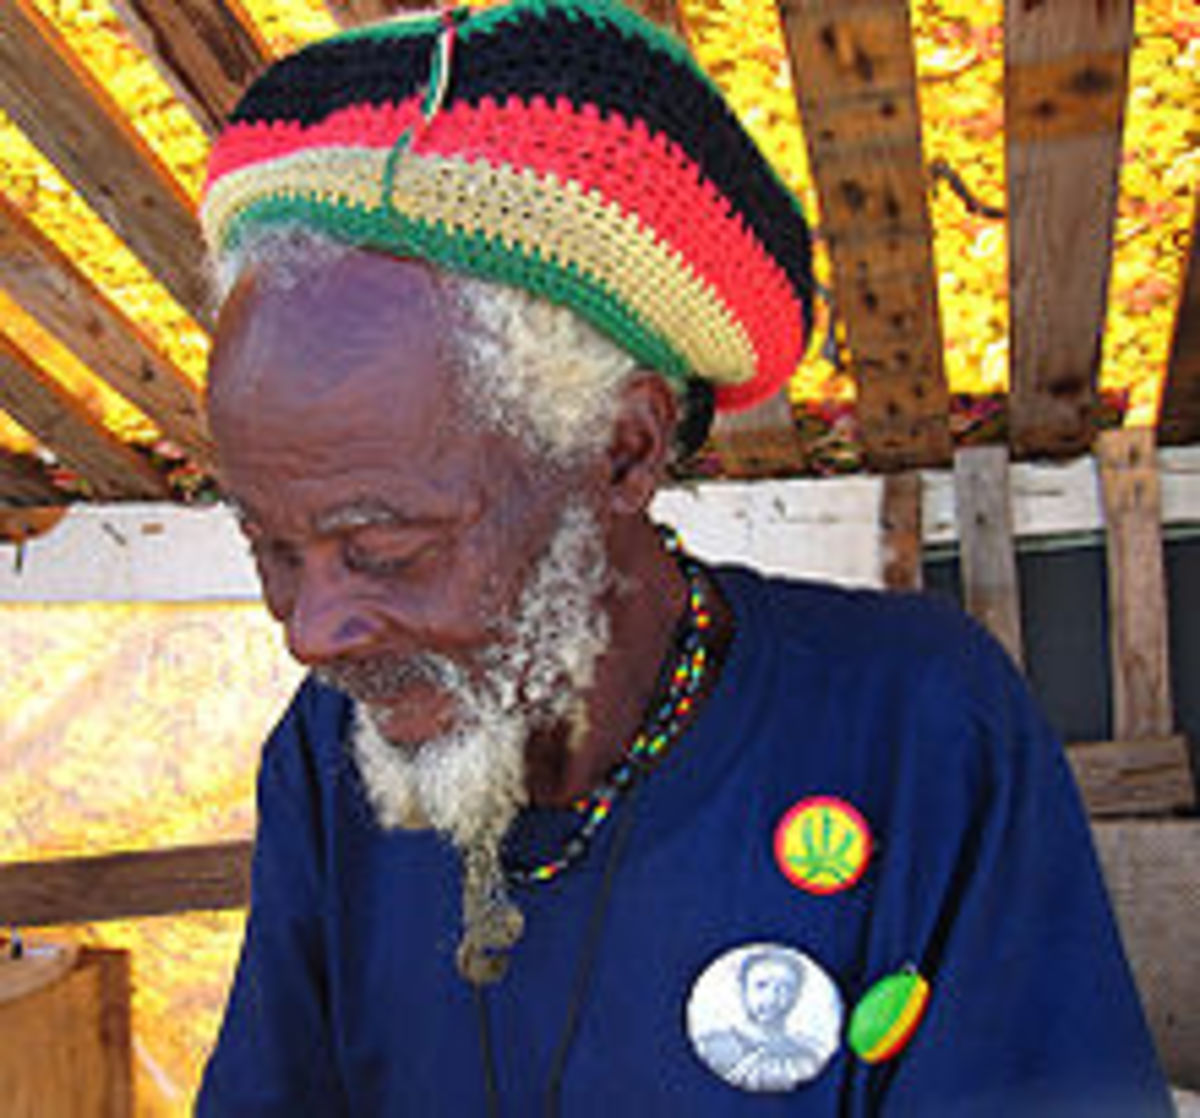 No doubt , this is a Rastafarian